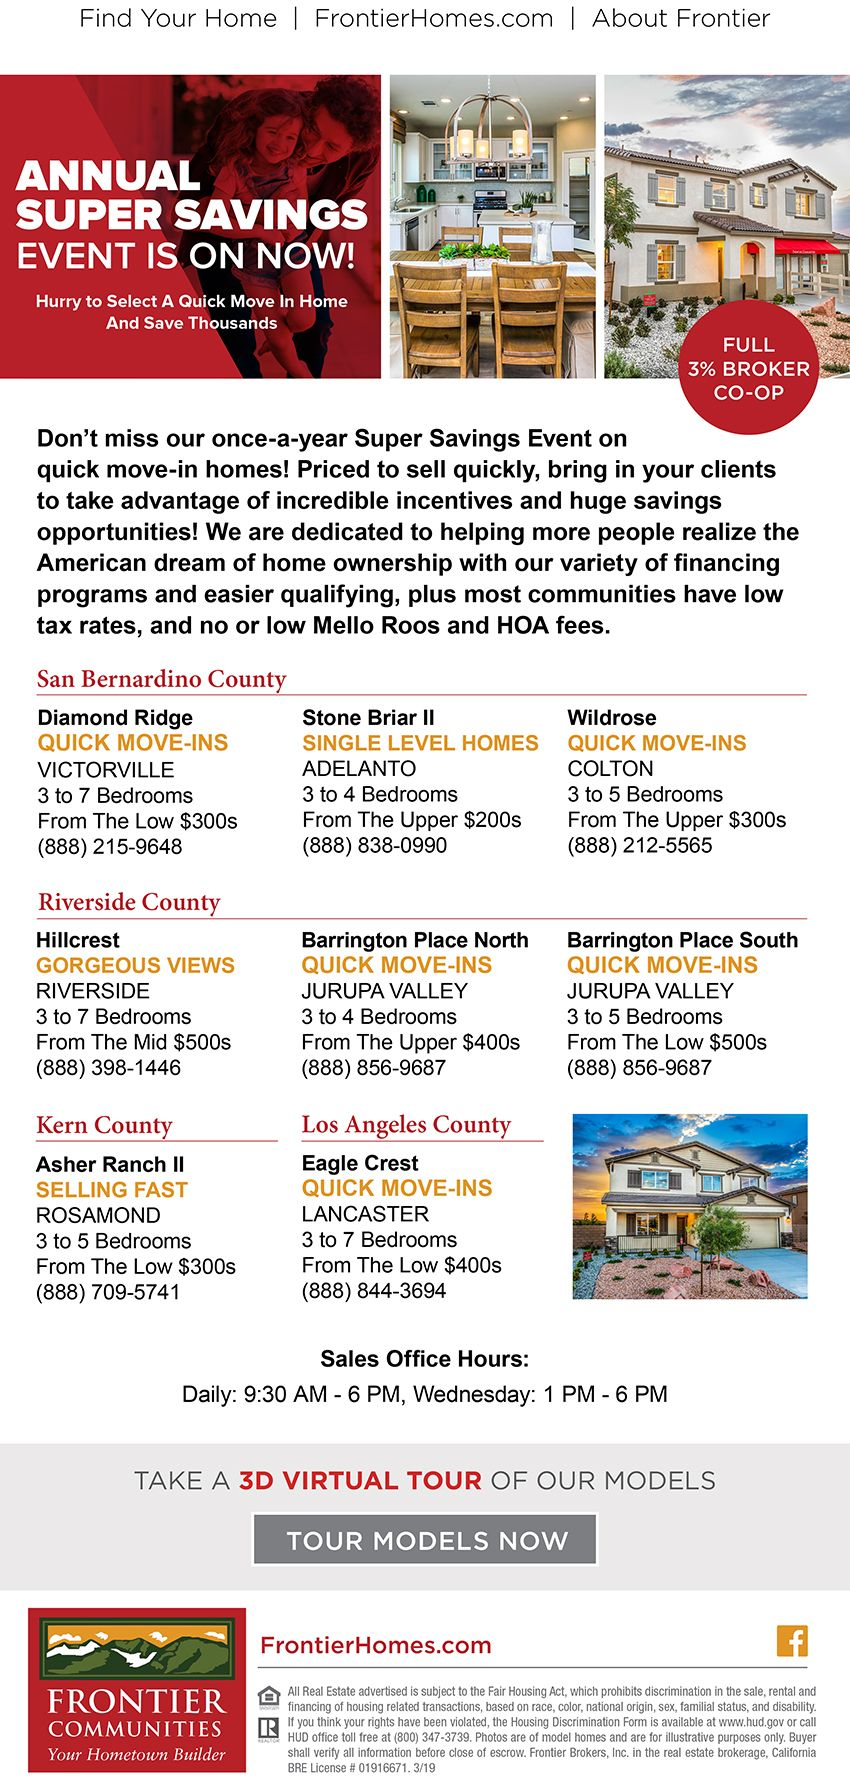 New Homes for Sale in the Southern California Hurry Before